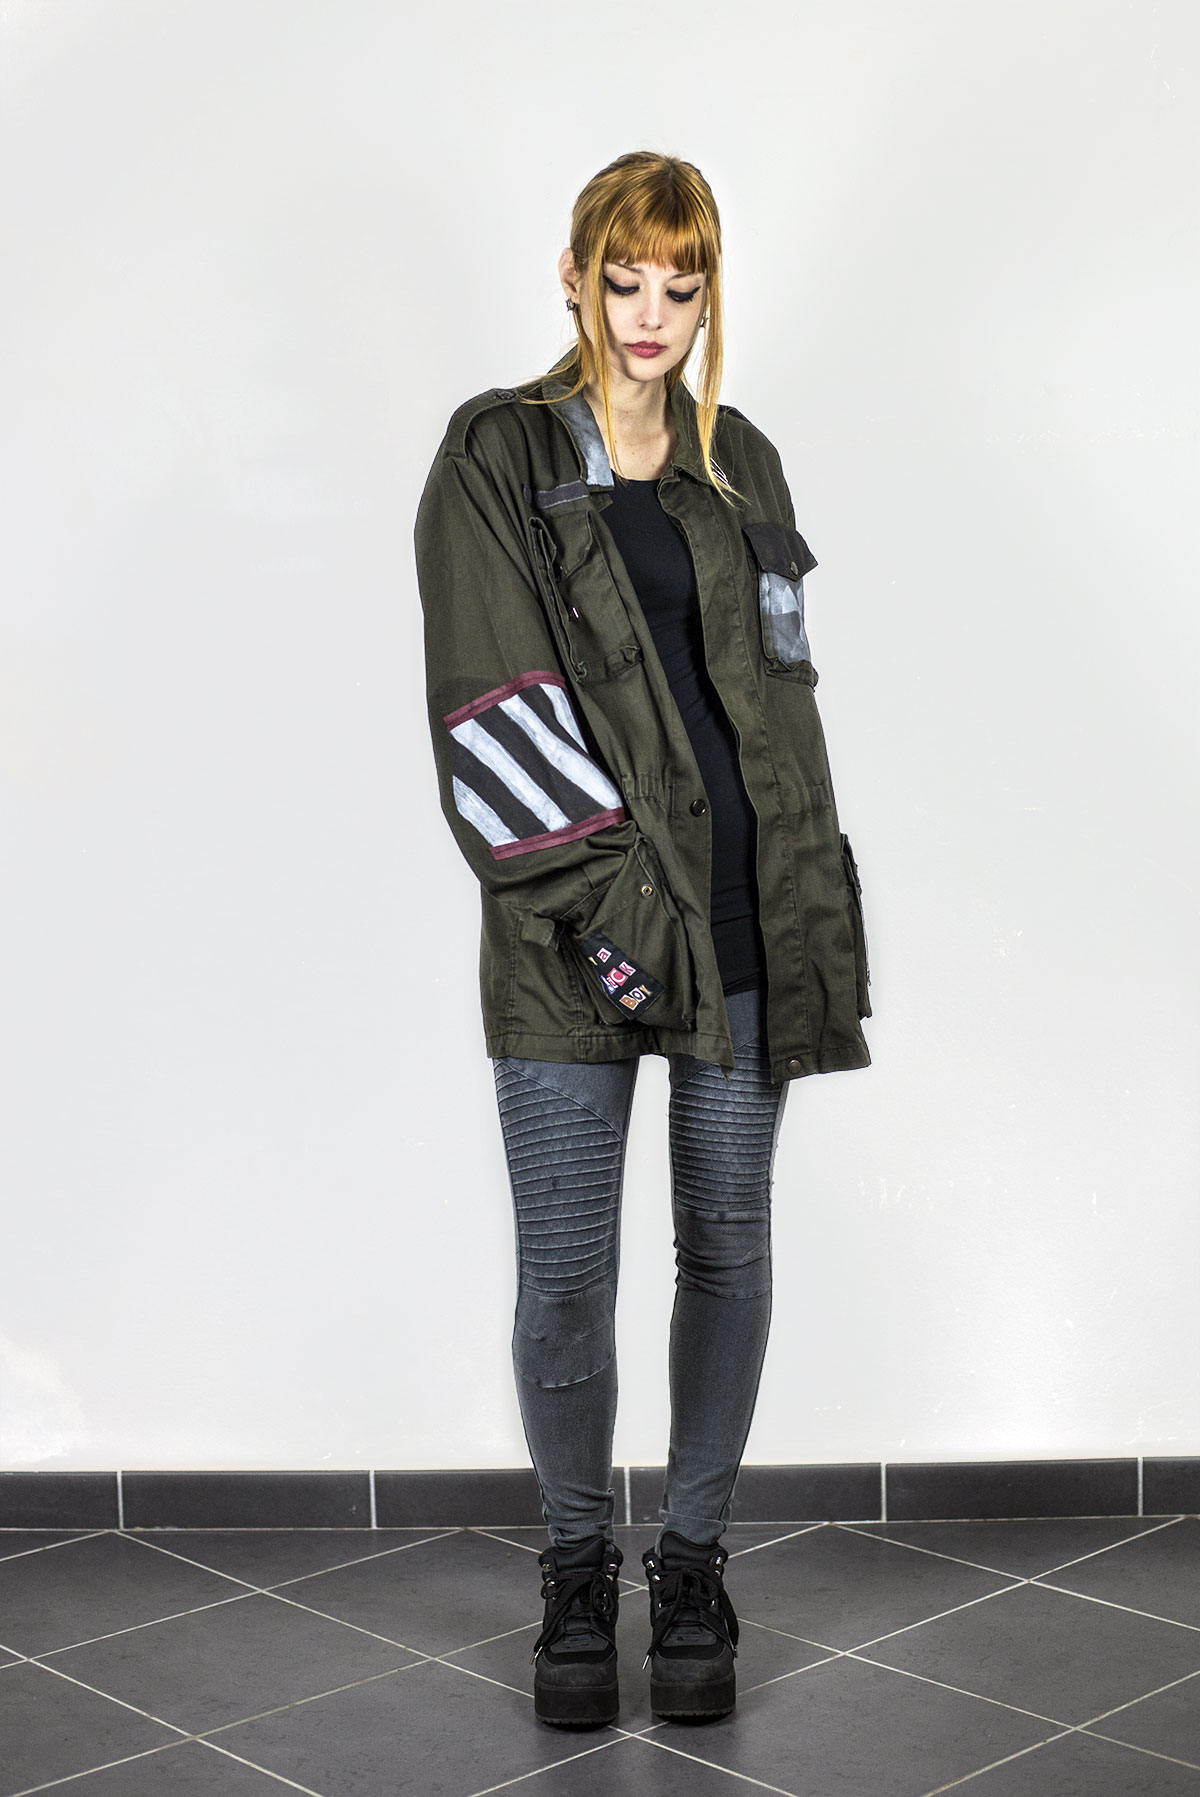 rebelsmarket_fulmineo_remade_military_jacket_jackets_7.jpg